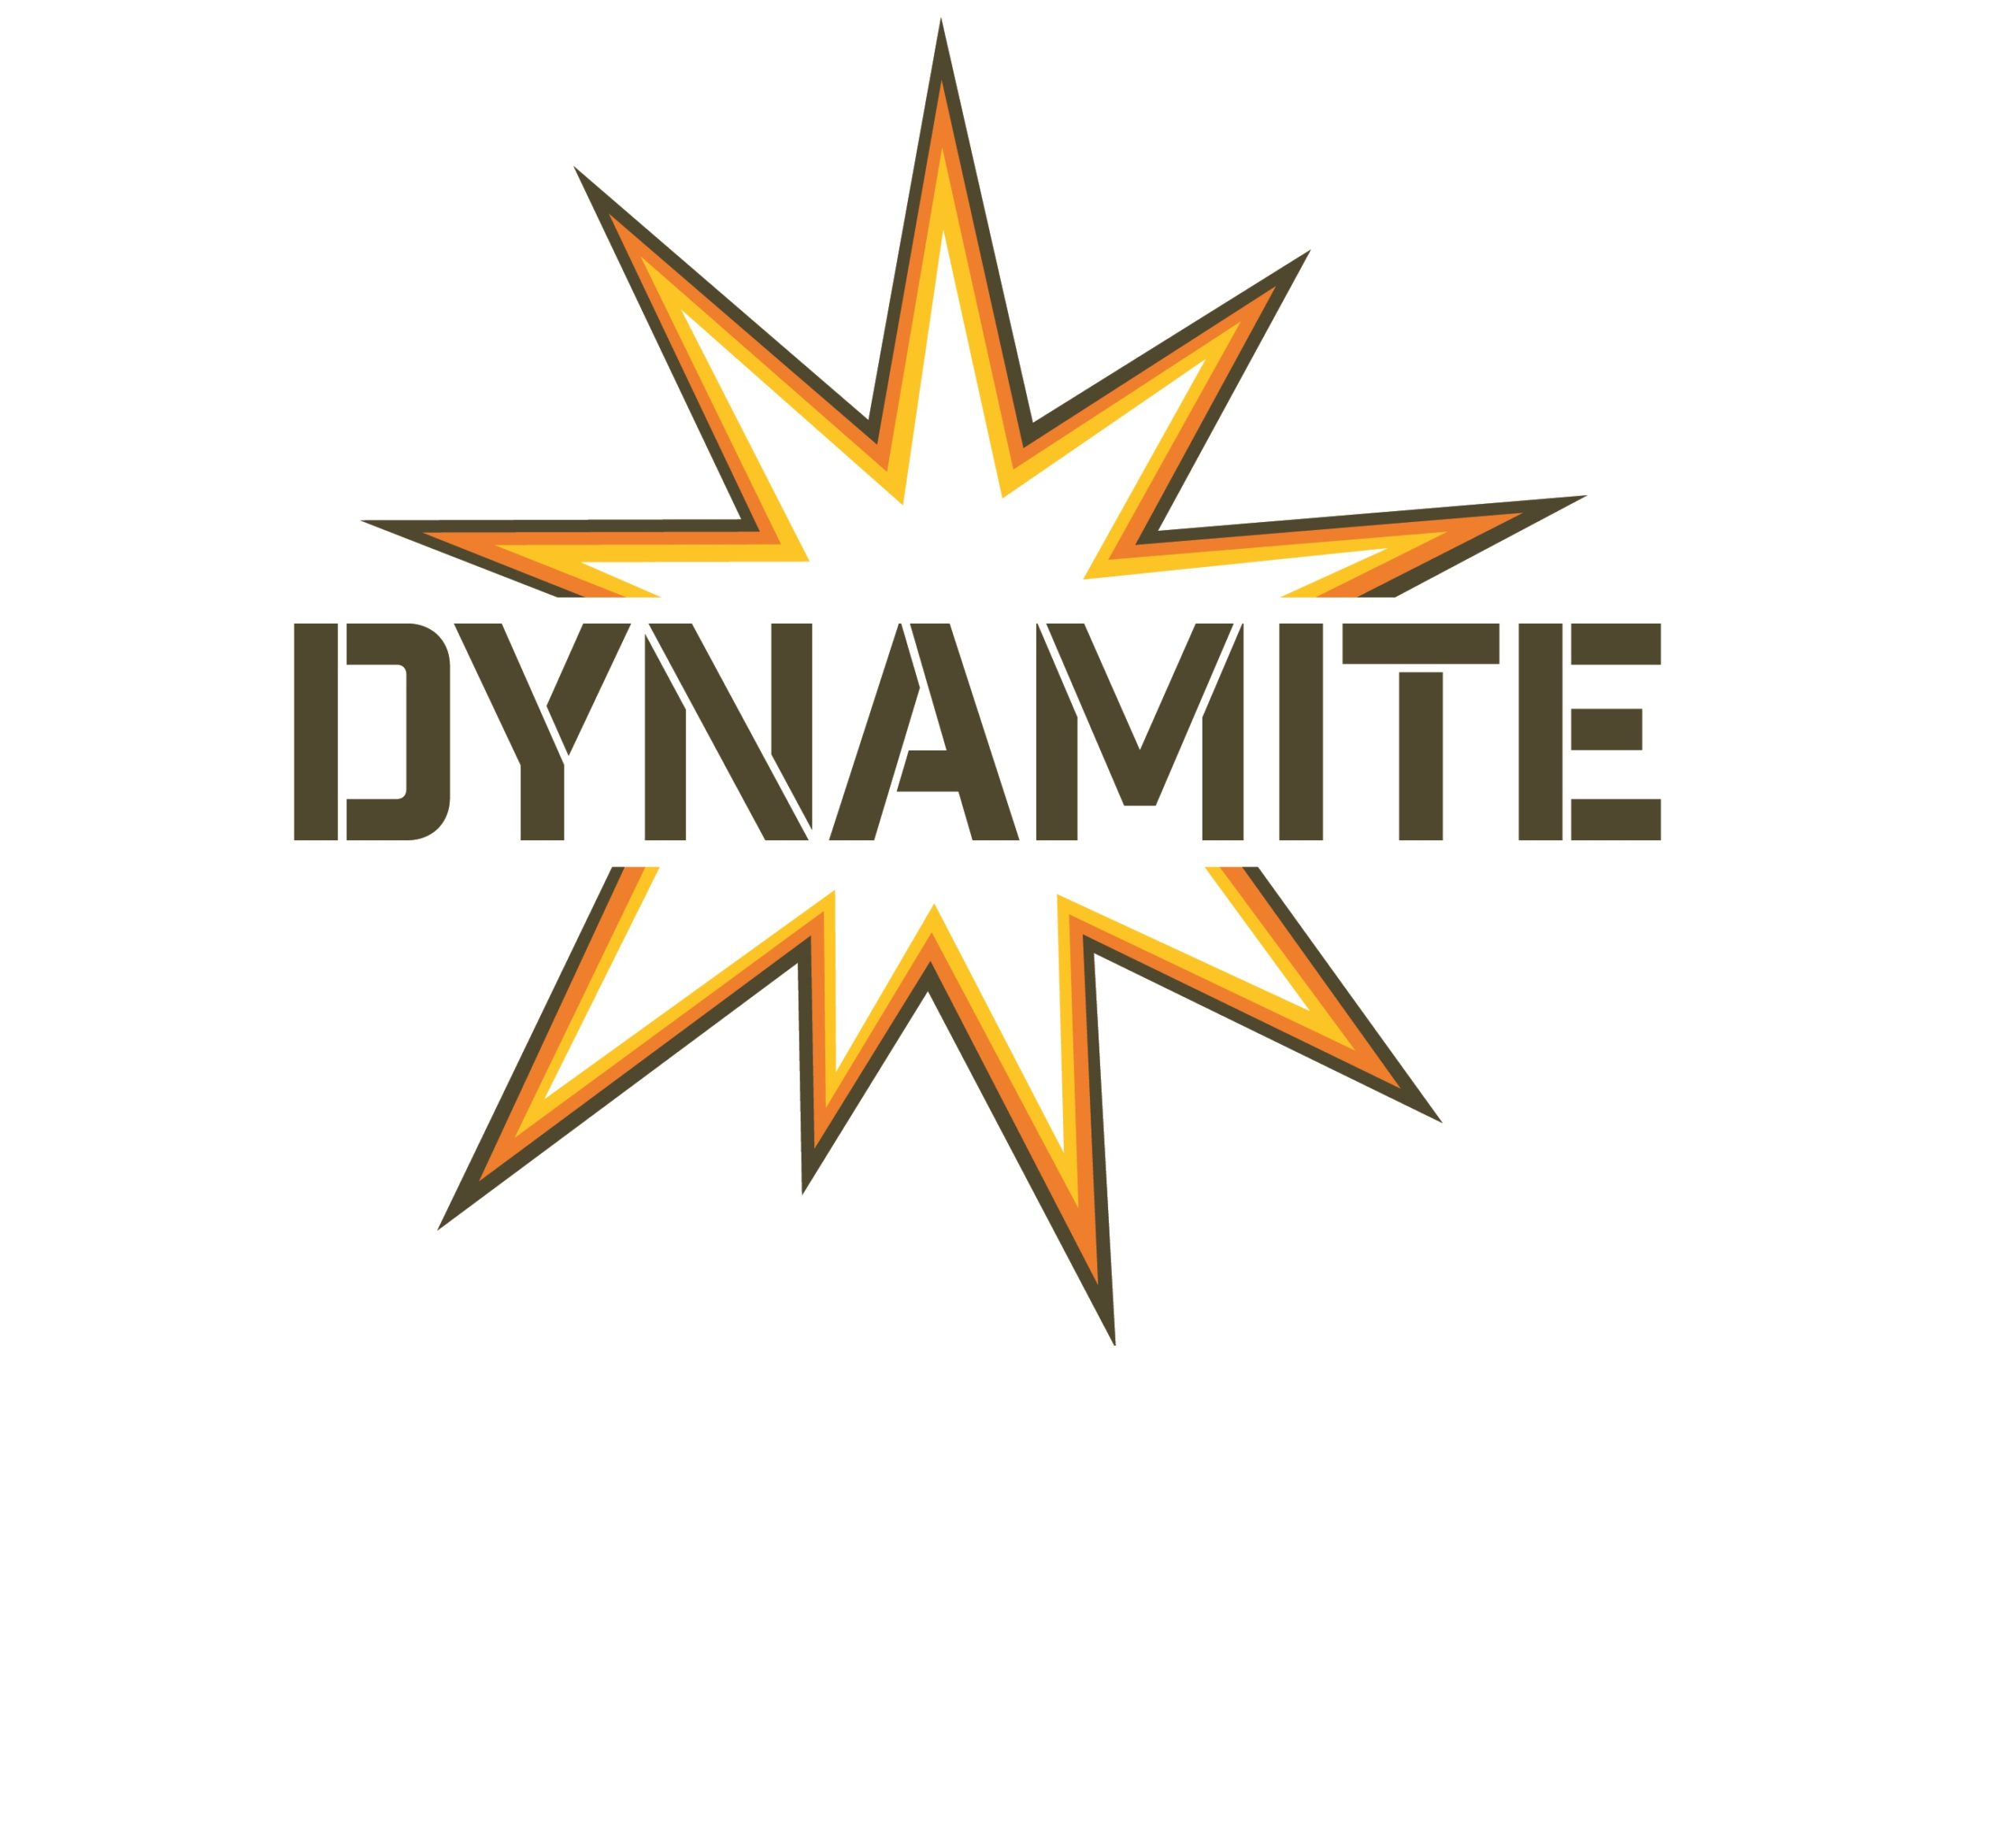 Dynamite Baits Canal Pairs Sponsor